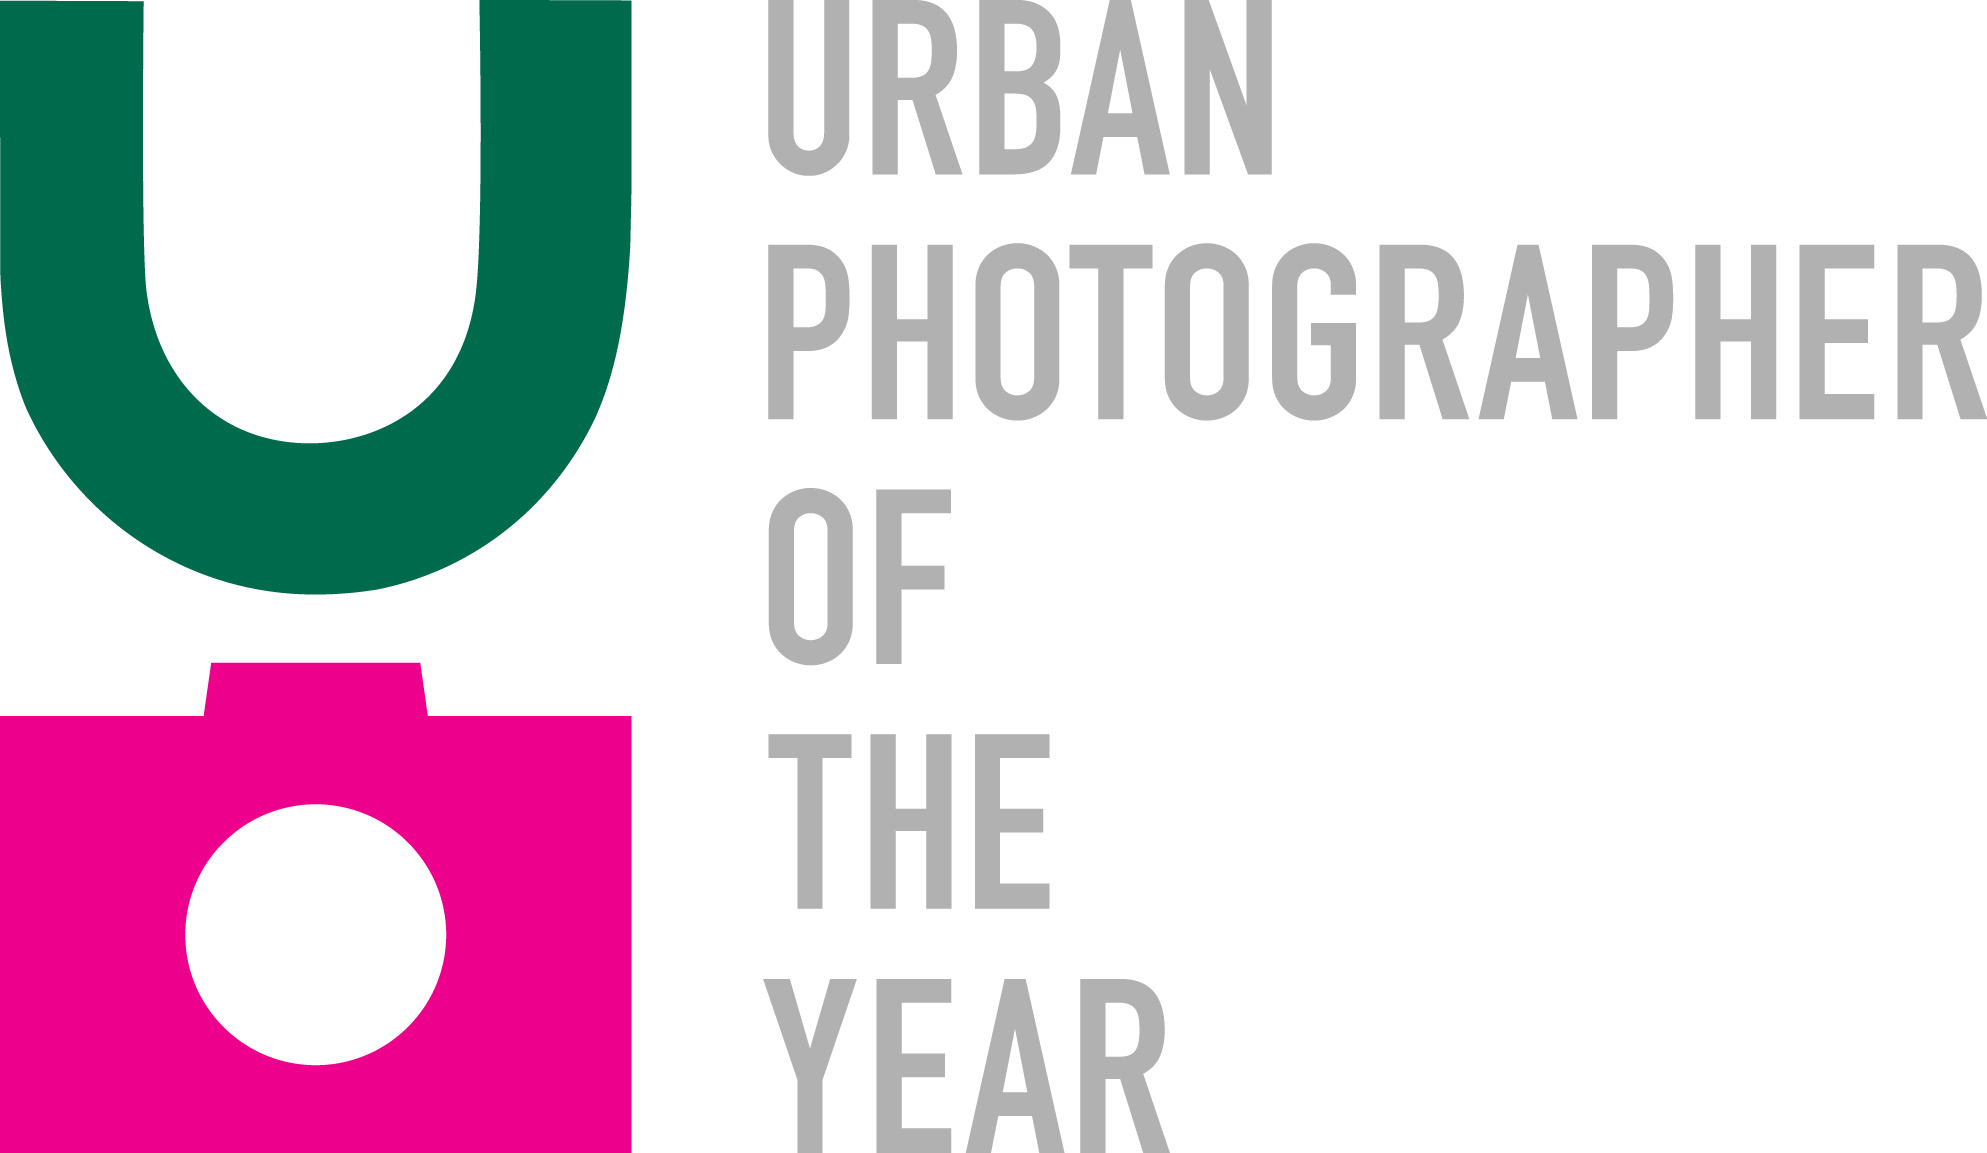 Urban Photographer of the Year 2016 Competition - logo